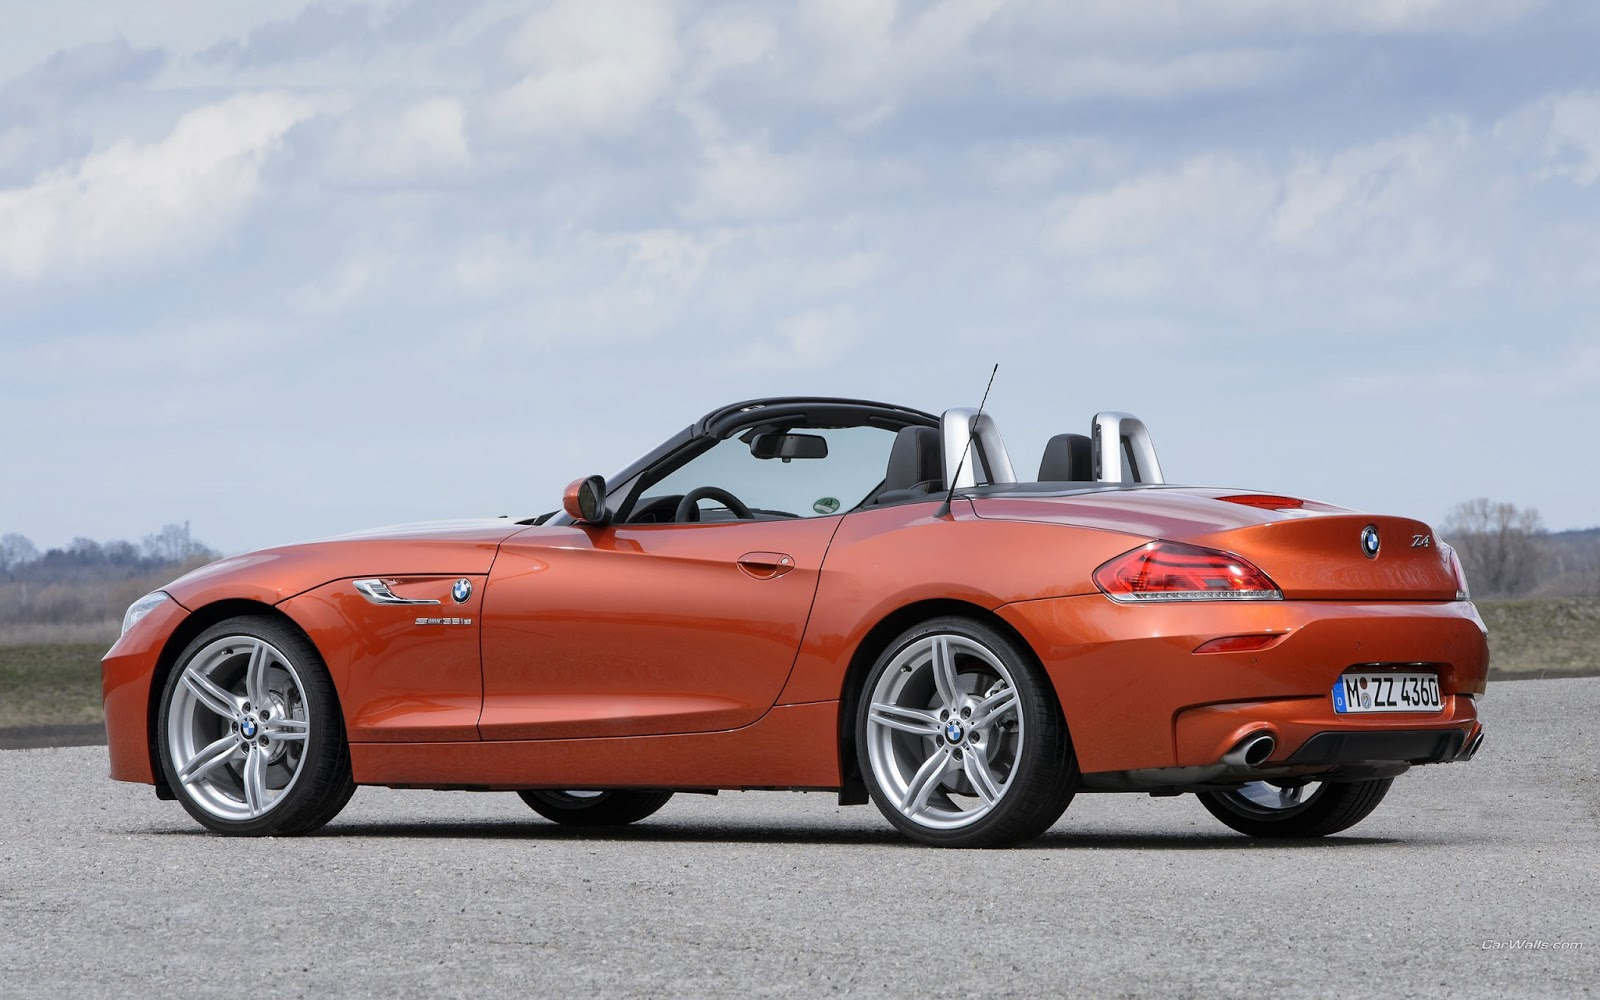 2014 Bmw Z4 Roadster Cars Hd Wallpaper | Apps Directories